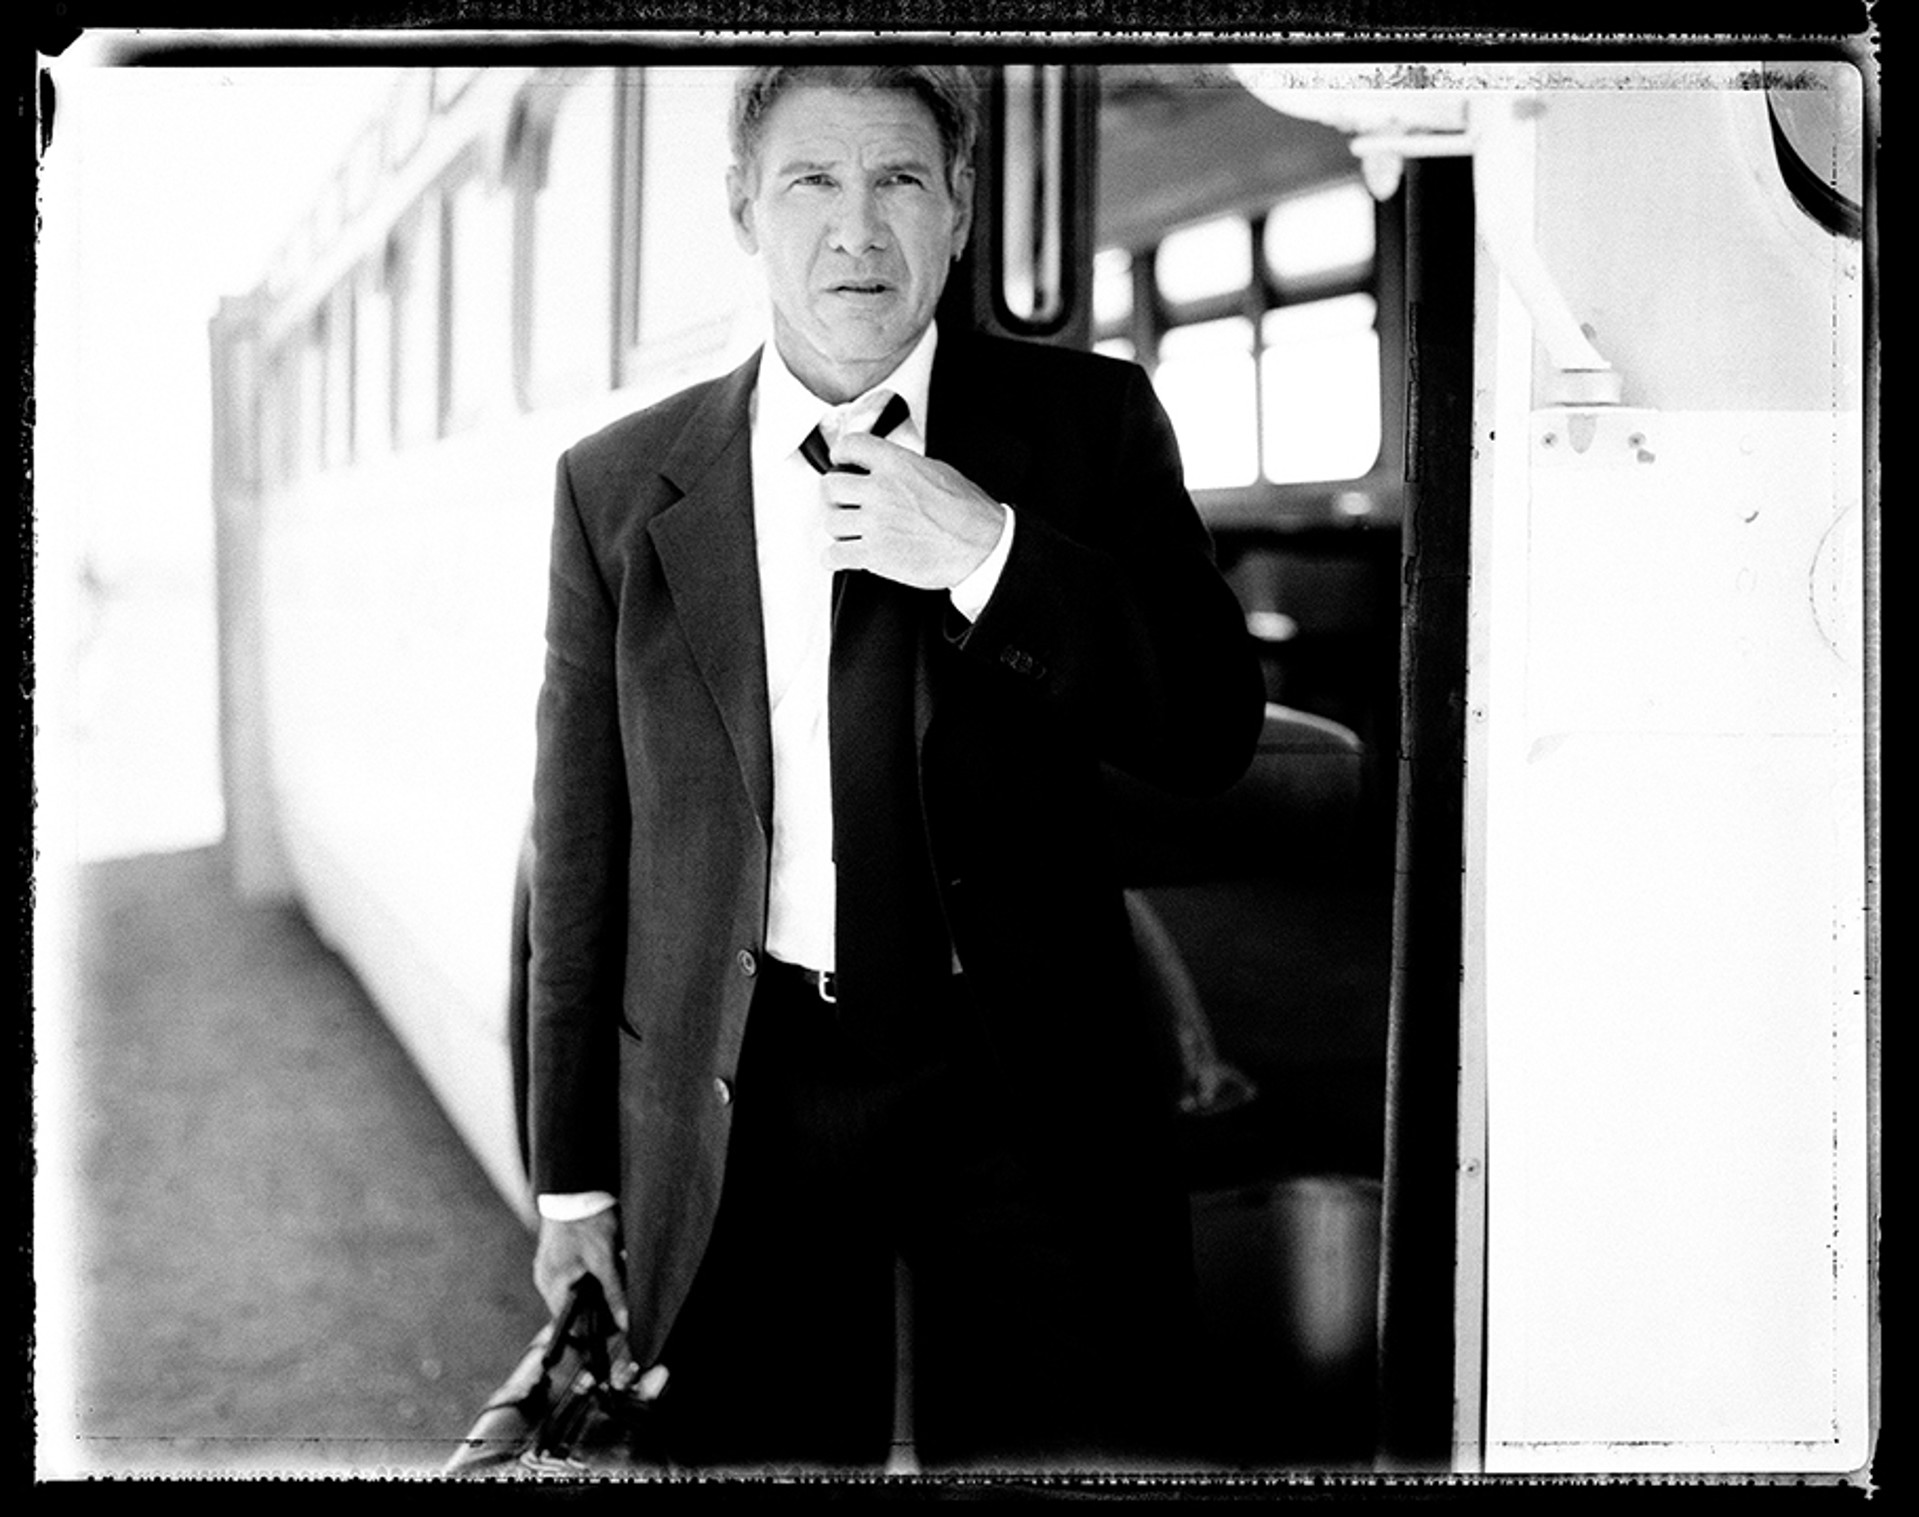 02020 Harrison Ford Bus Amboy BW by Timothy White